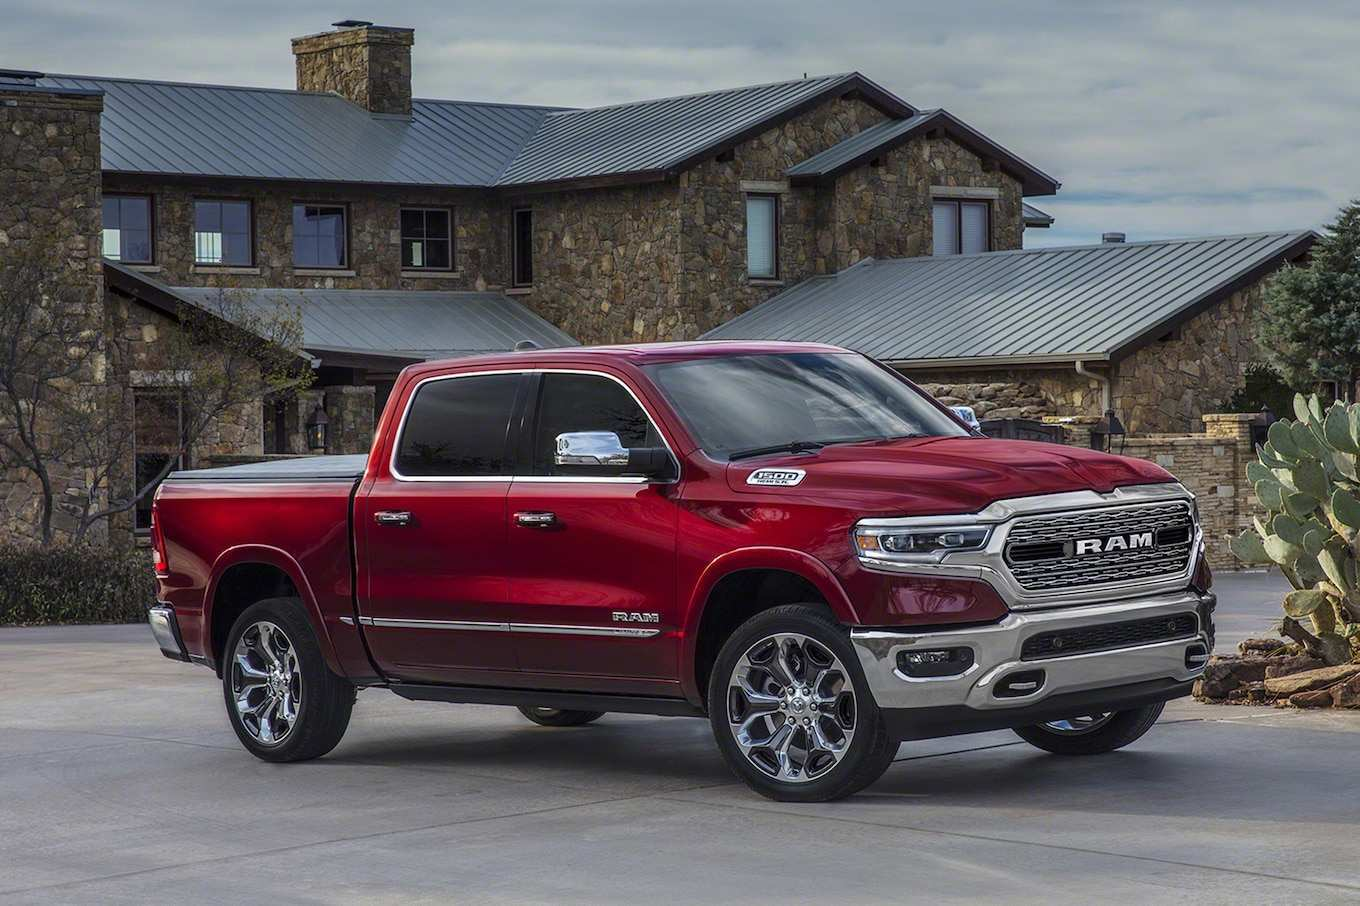 32 Concept of 2019 Dodge Ram 1500 Images Spy Shoot with 2019 Dodge Ram 1500 Images